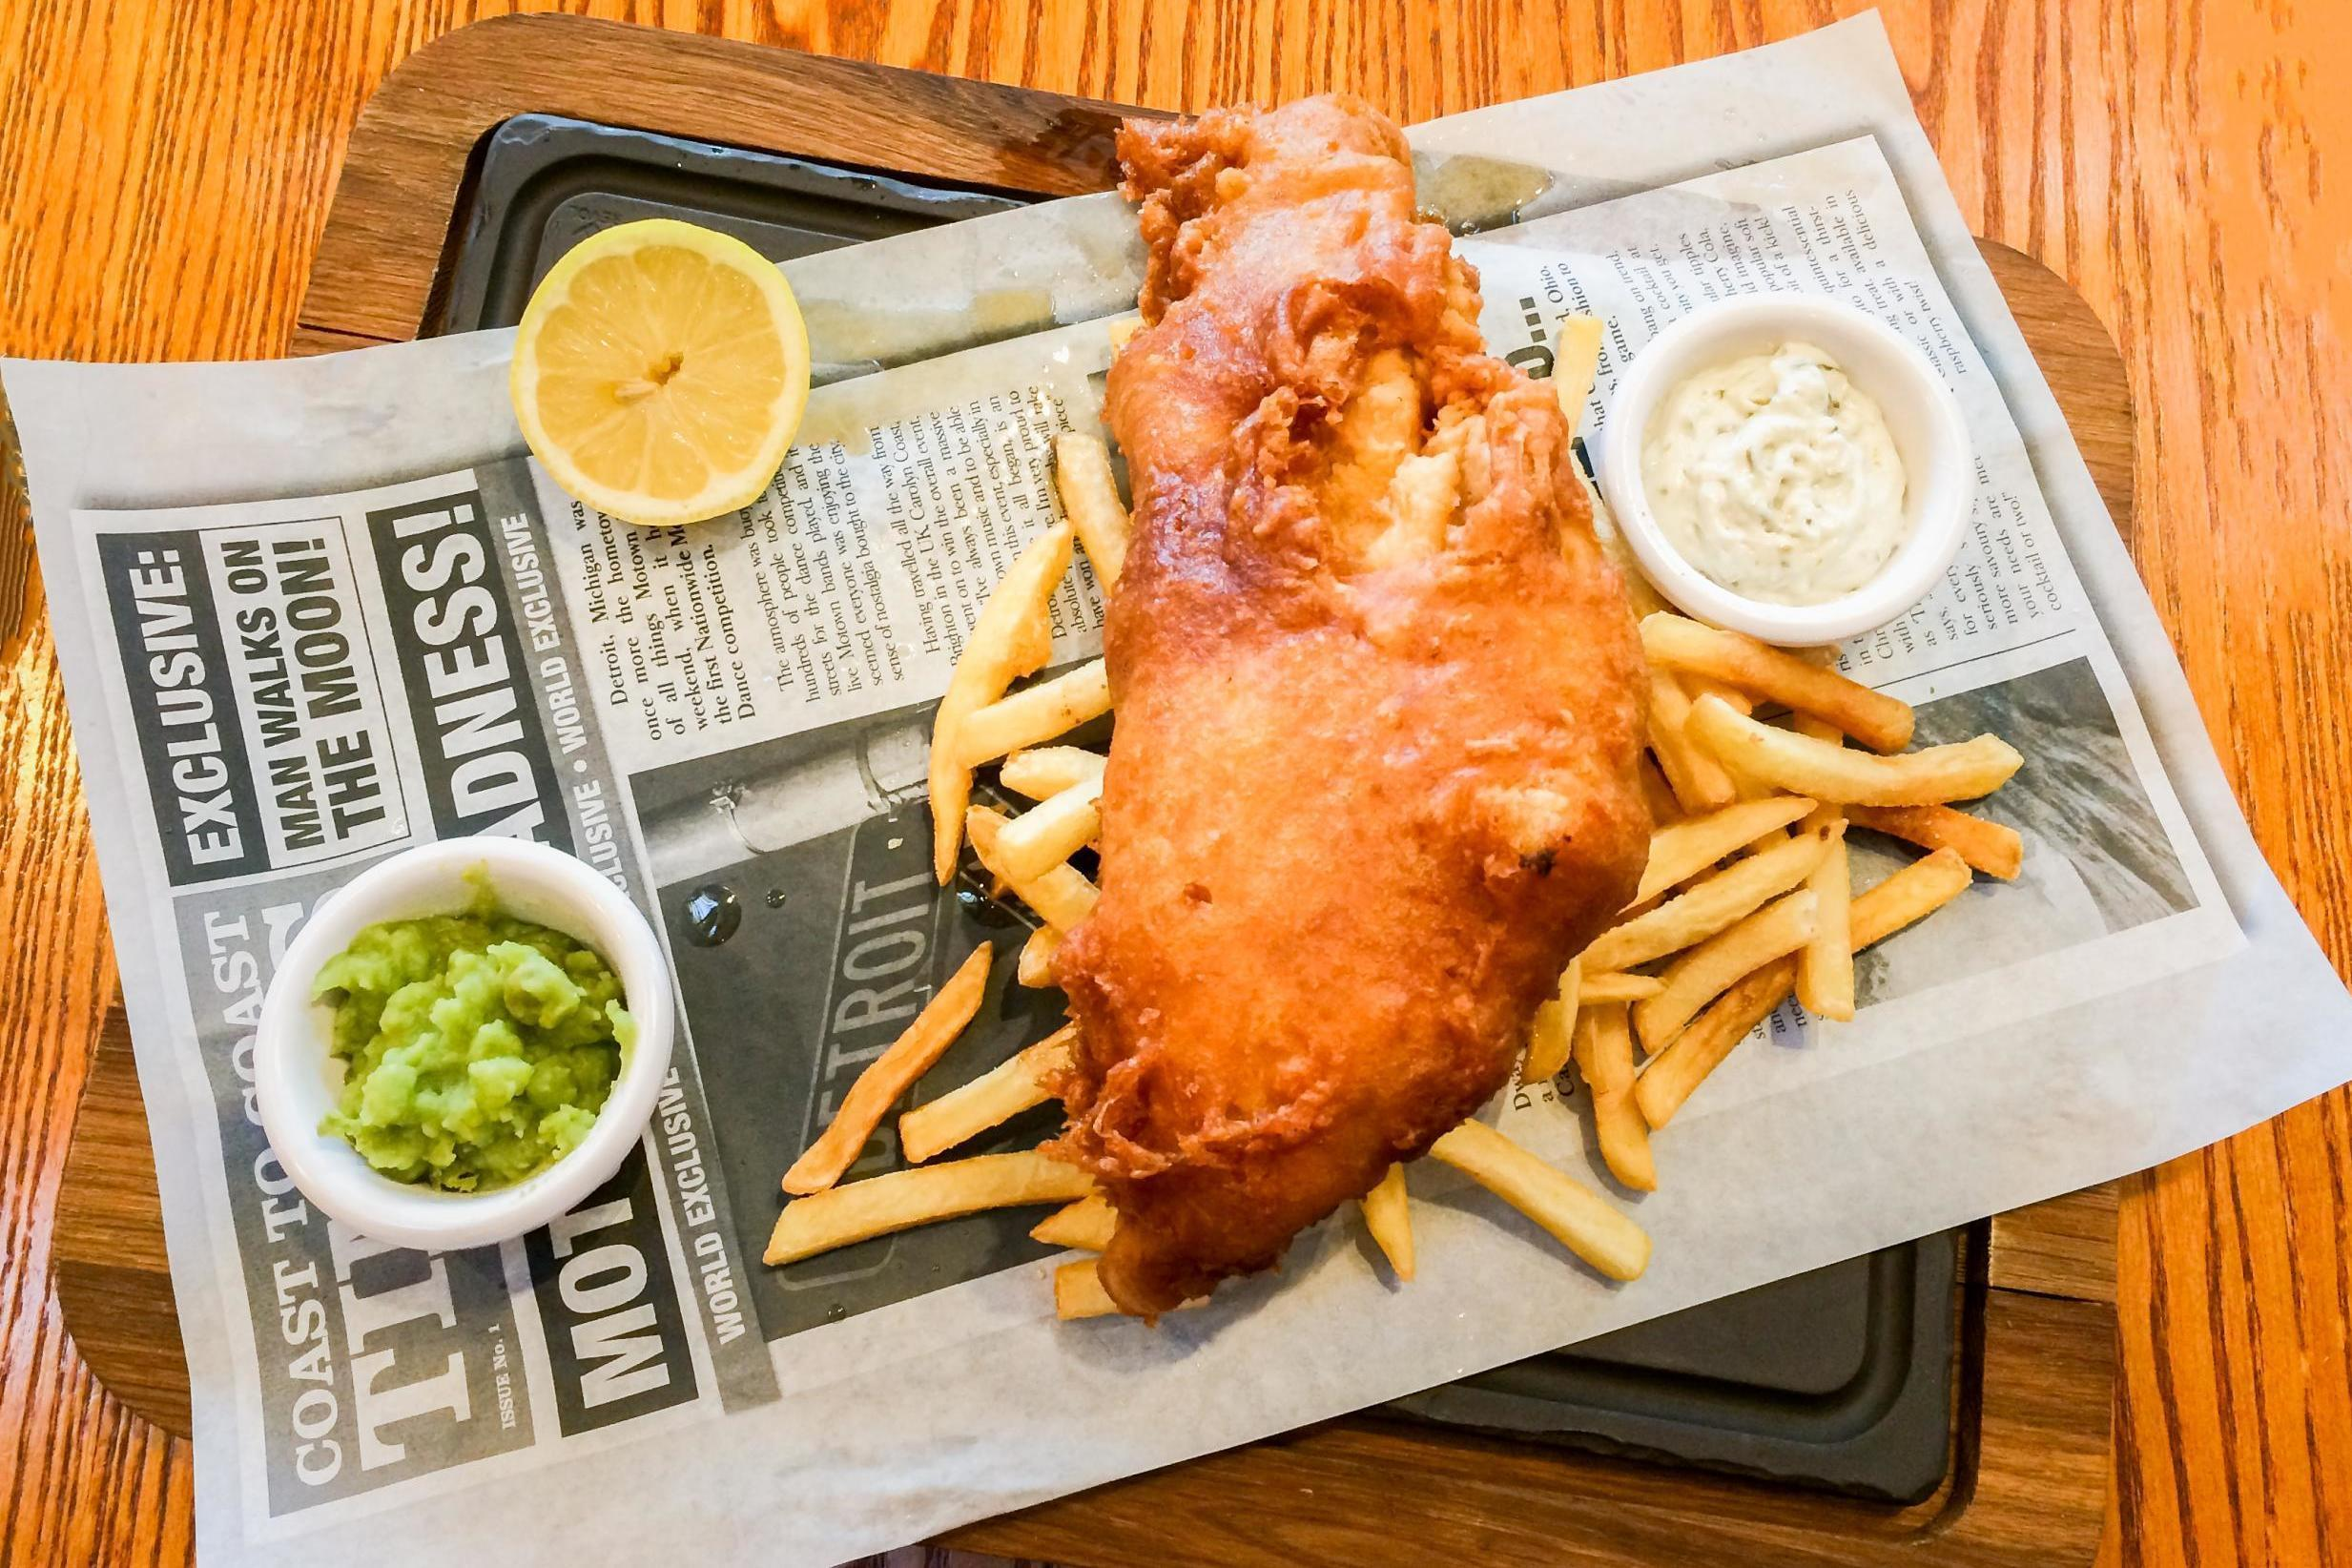 The Jewish history of fish and chips